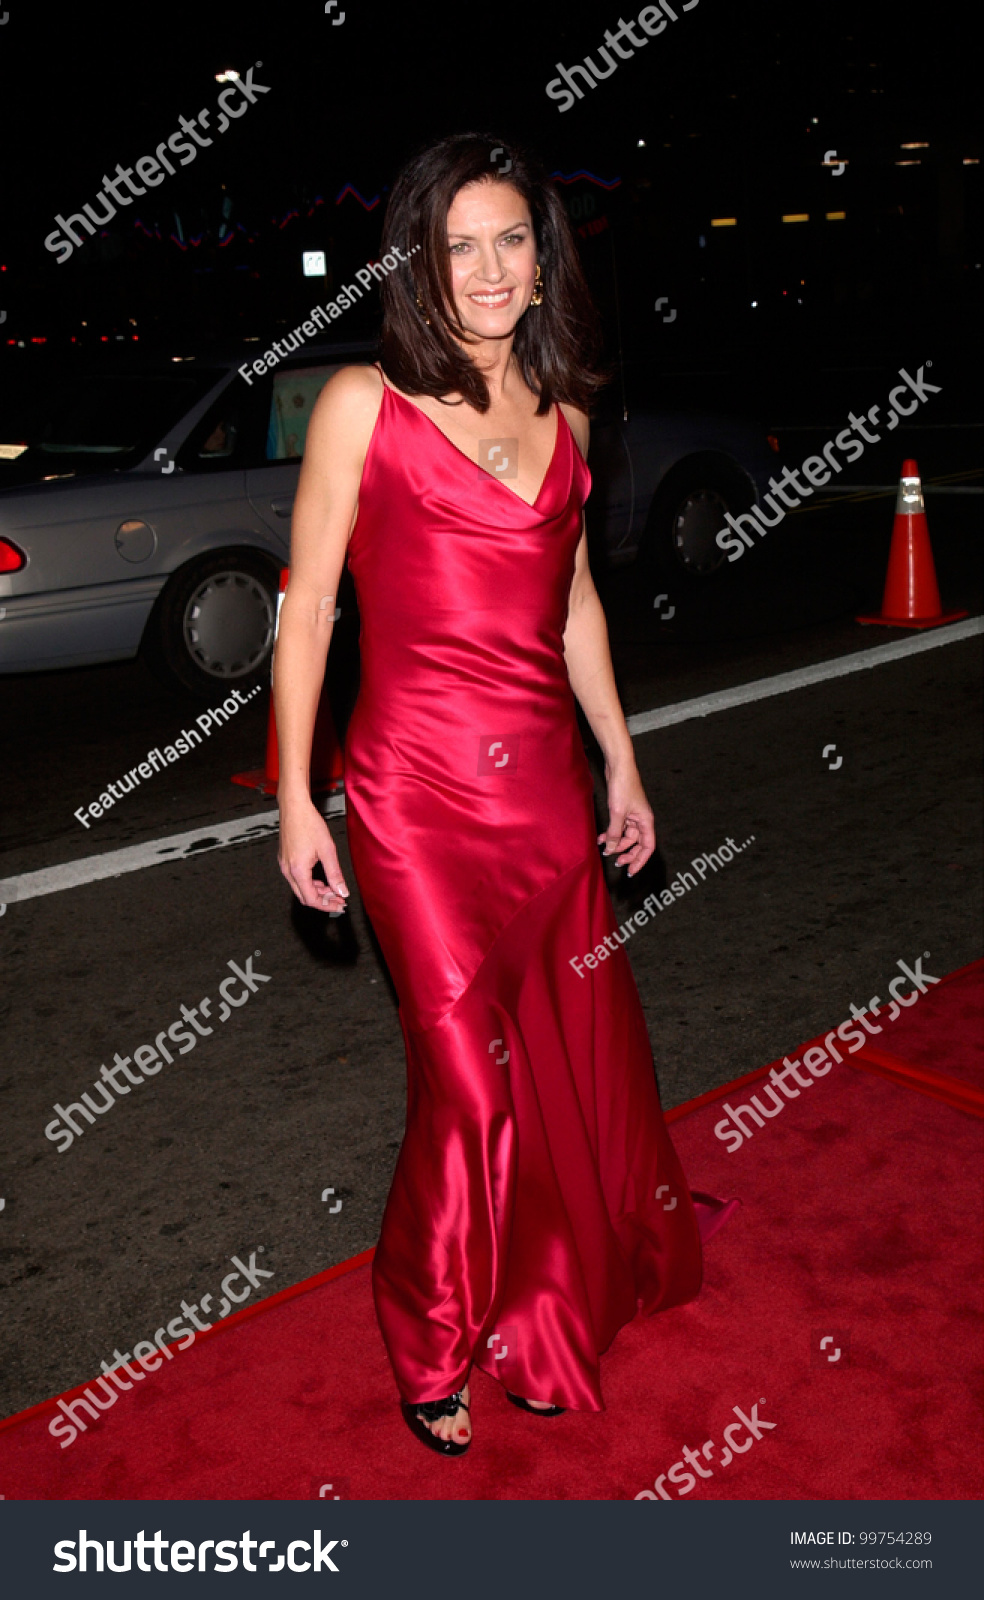 wendy crewson 2015wendy crewson barbara williams, wendy crewson interview, wendy crewson unexpected love, wendy crewson instagram, wendy crewson partner, wendy crewson facebook, wendy crewson, wendy crewson gay, wendy crewson imdb, wendy crewson net worth, wendy crewson gary logan, wendy crewson hot, wendy crewson girlfriend, wendy crewson age, wendy crewson bio, wendy crewson twitter, wendy crewson the social, wendy crewson 2015, wendy crewson nudography